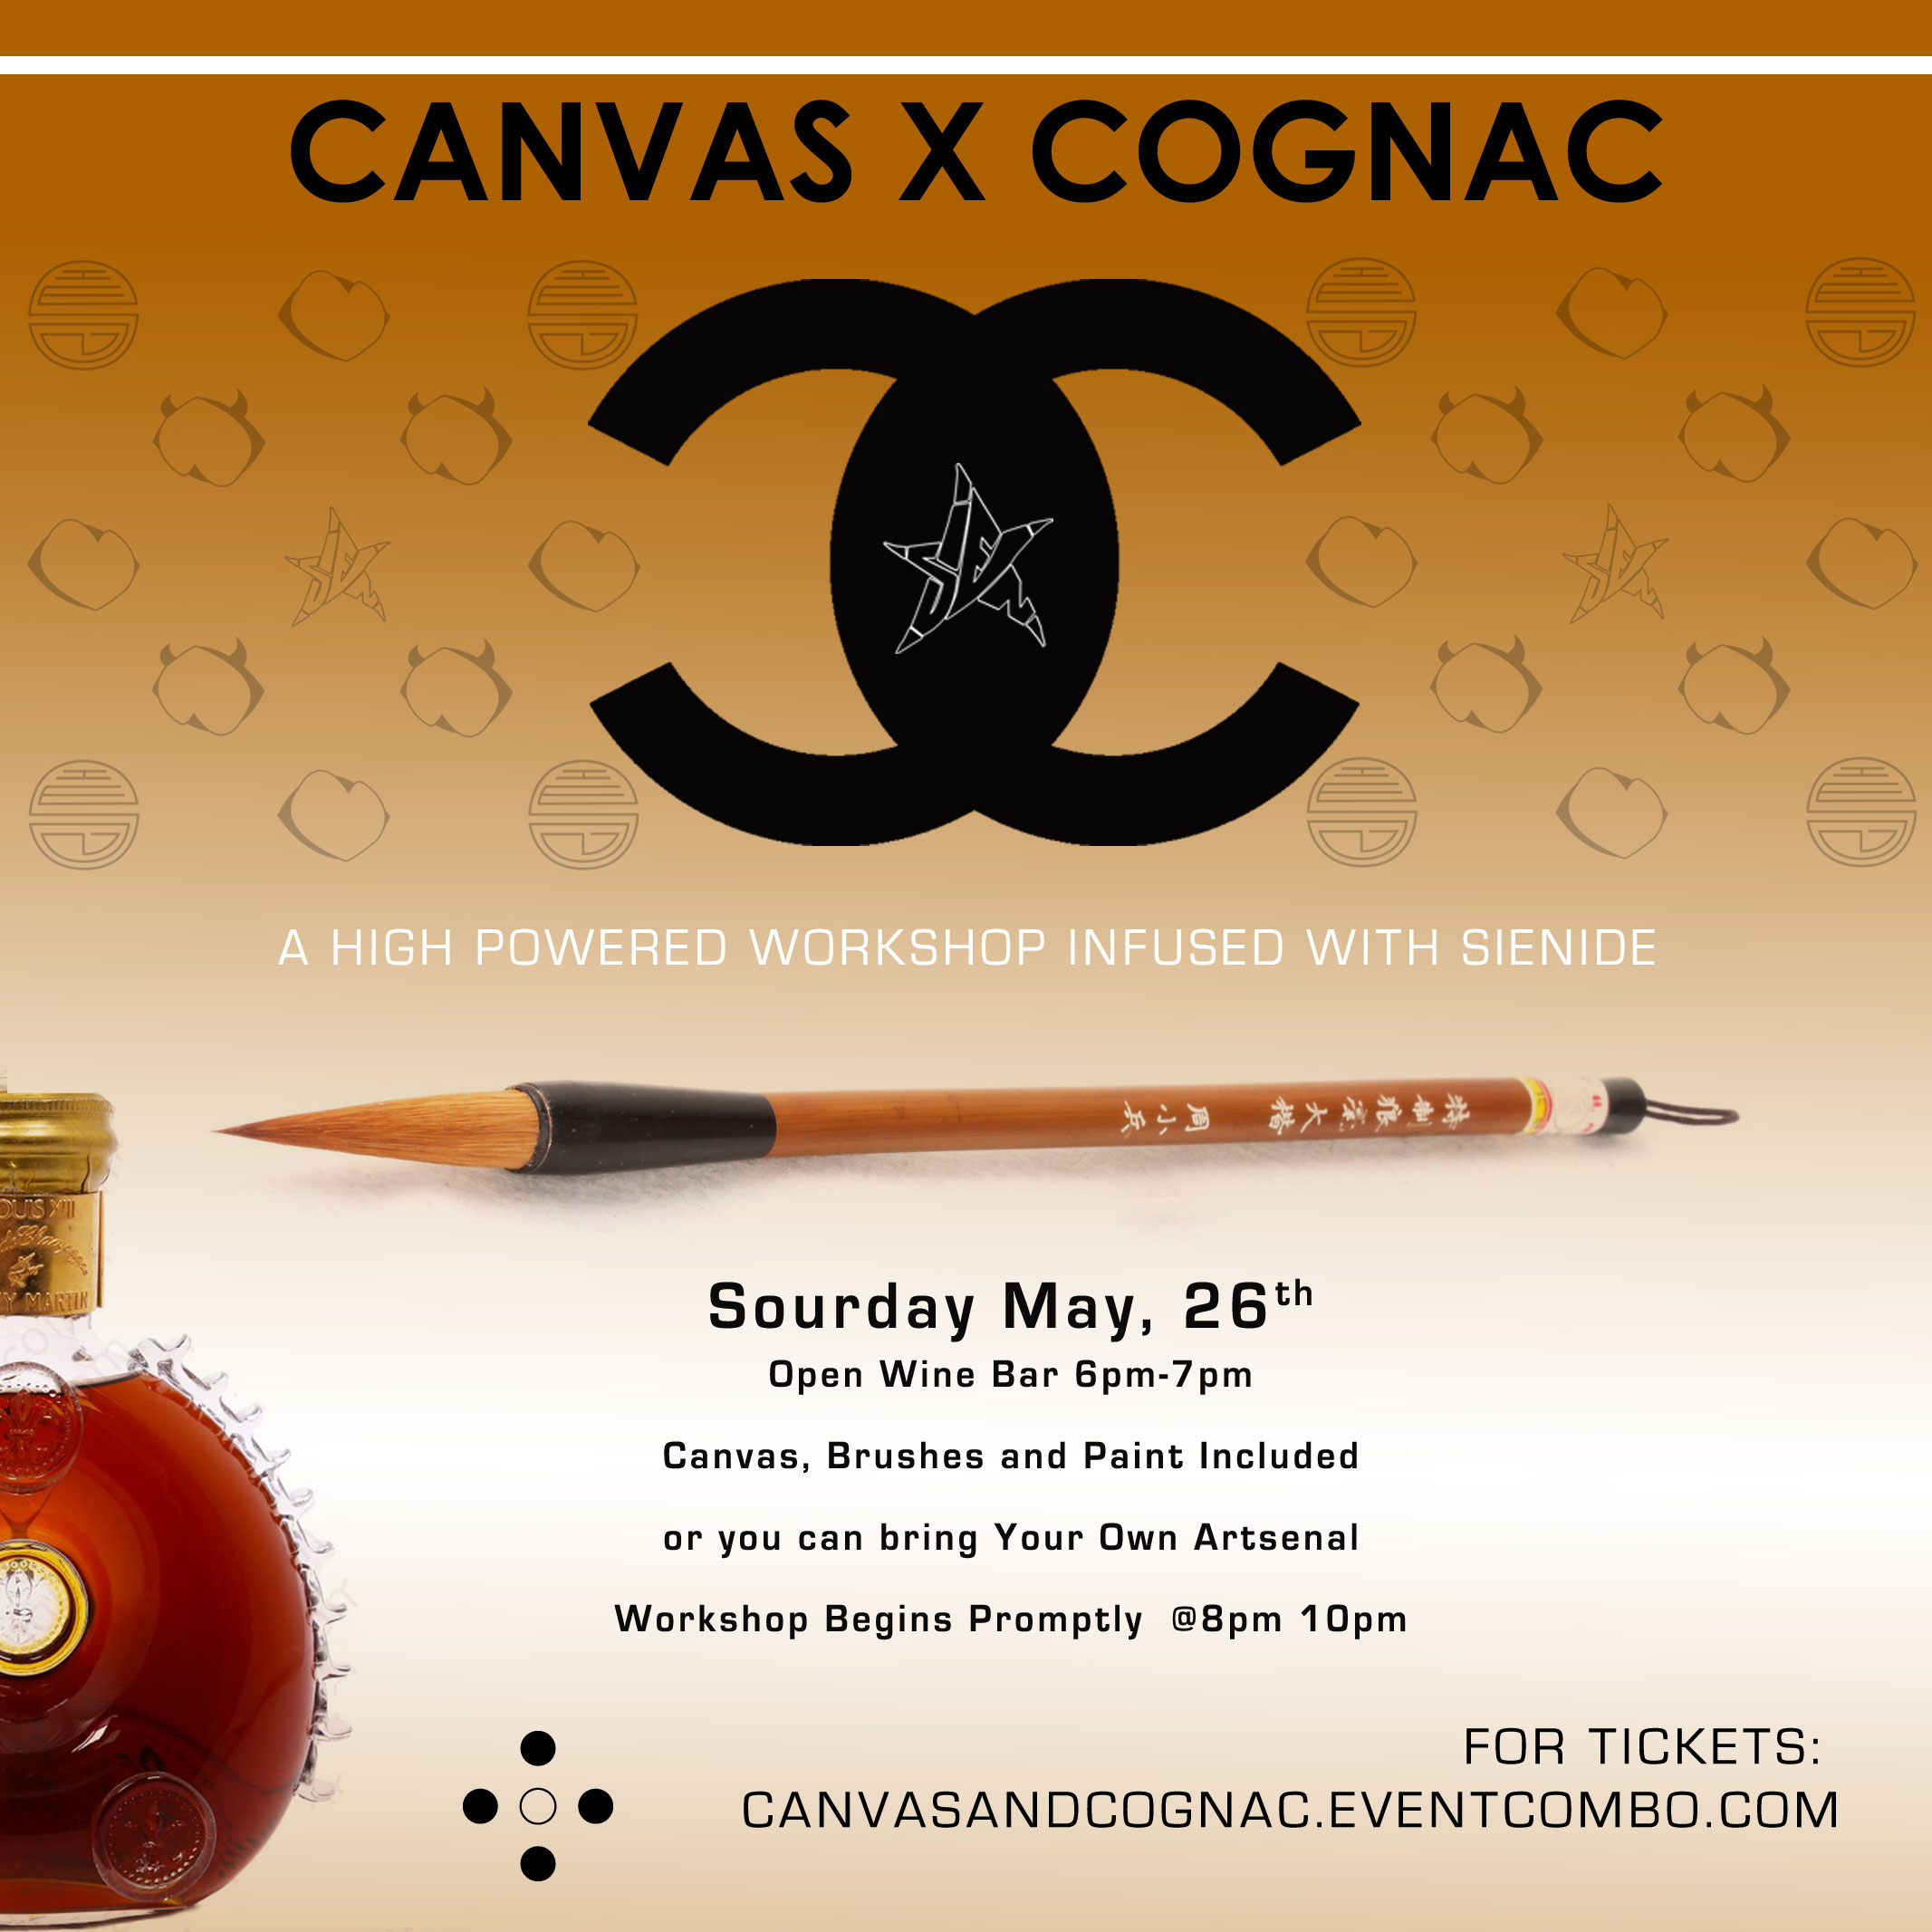 CANVAS AND COGNAC